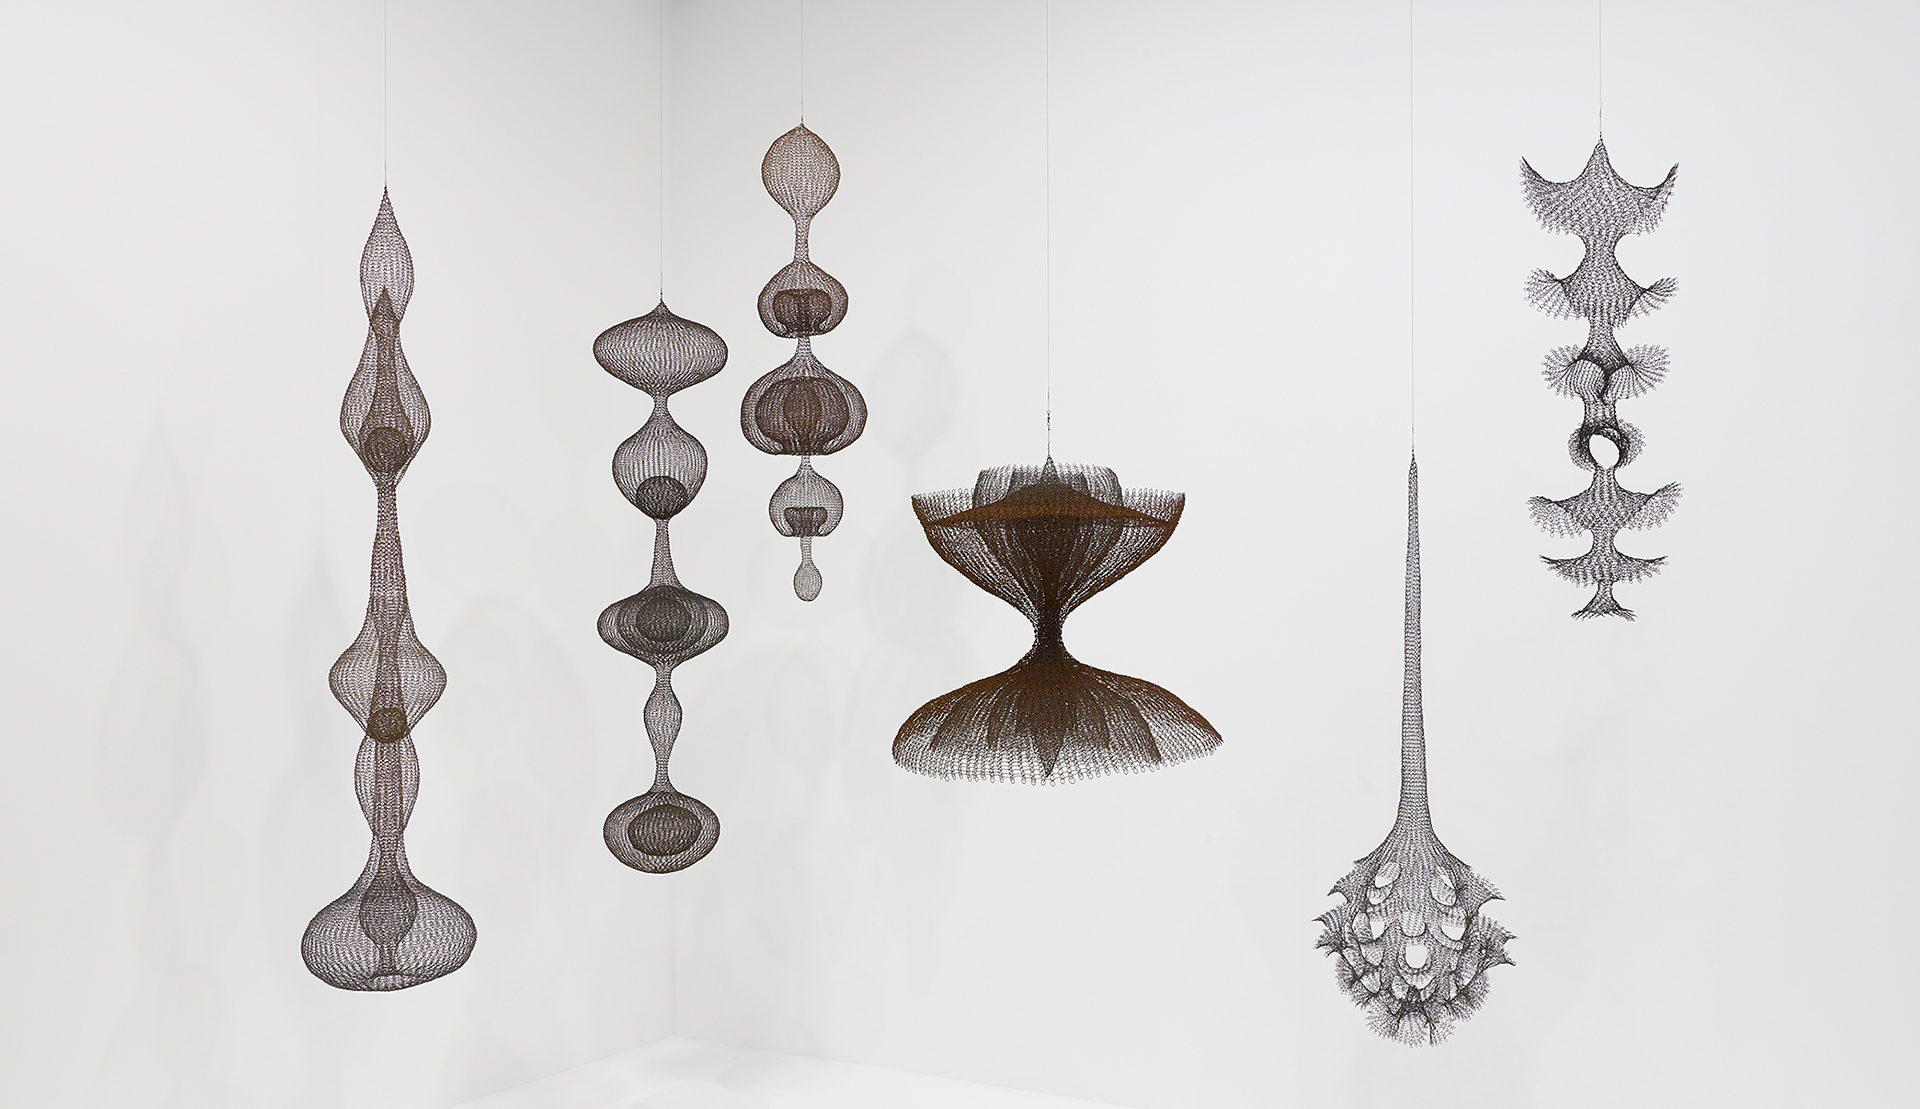 An installation view of the exhibition Ruth Asawa: A line can go anywhere at David Zwirner London, 2020.